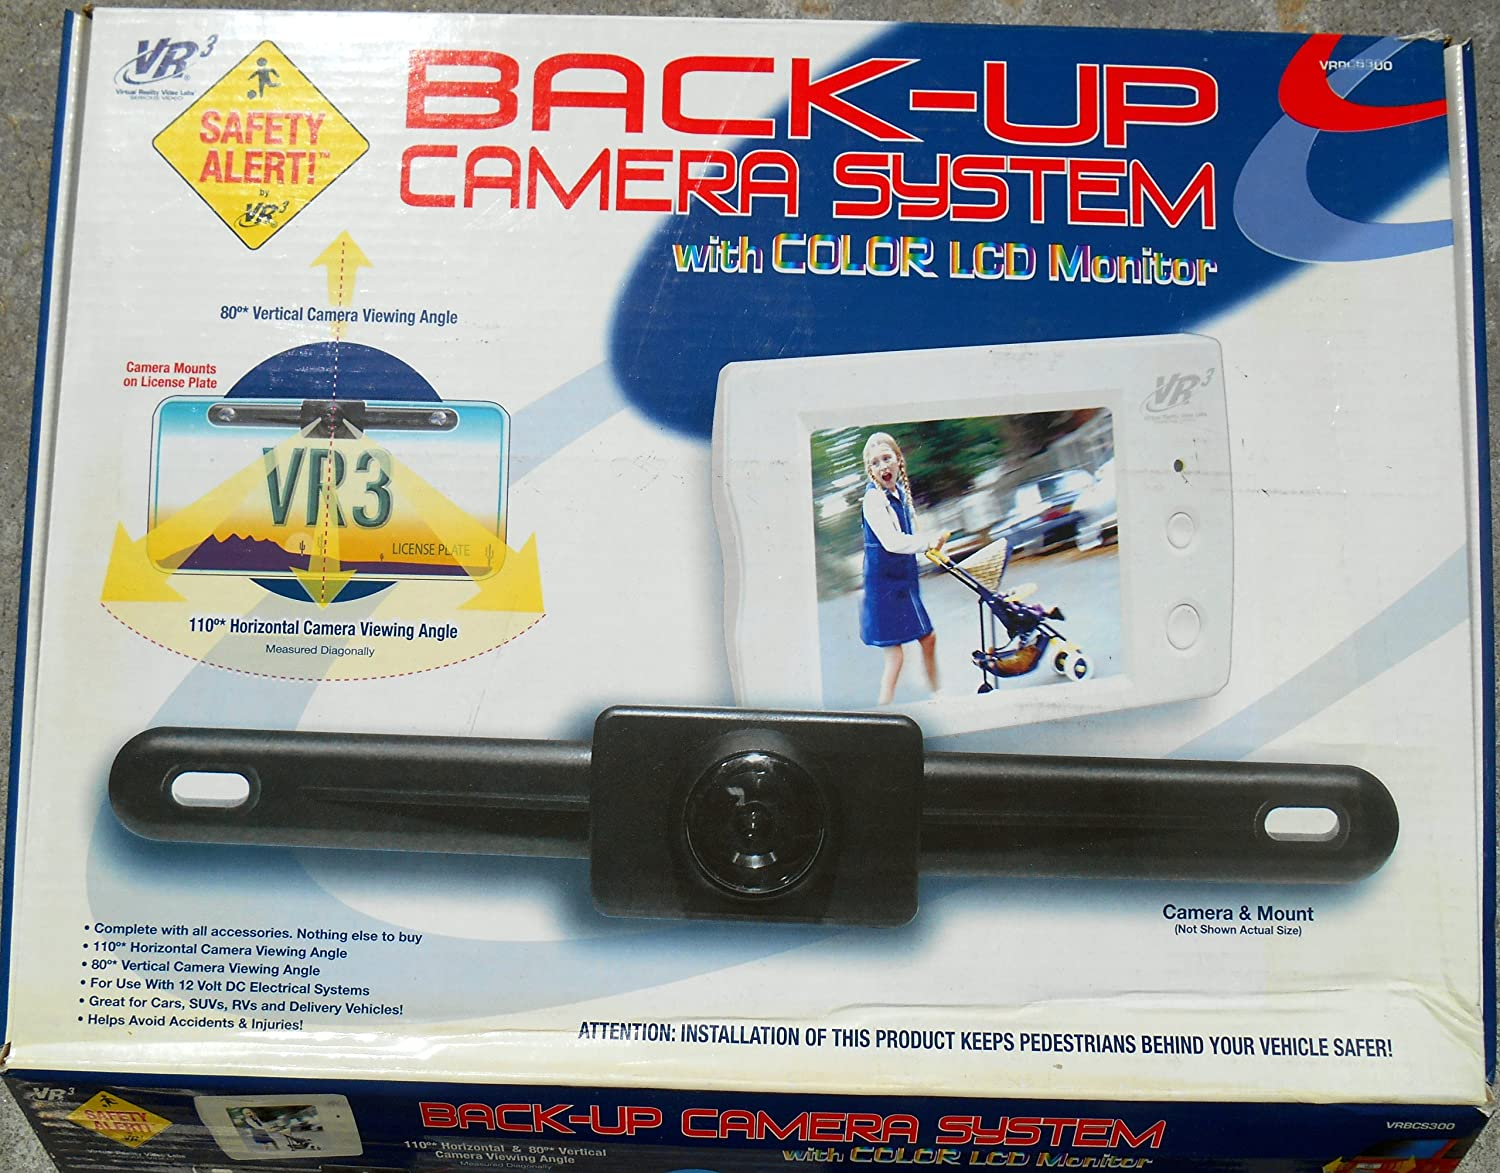 91OAmrFSLdL._SL1500_ amazon com vr3 vrbcs300 back up camera with 2 5 inch lcd color vrbcs300w wiring diagram at crackthecode.co